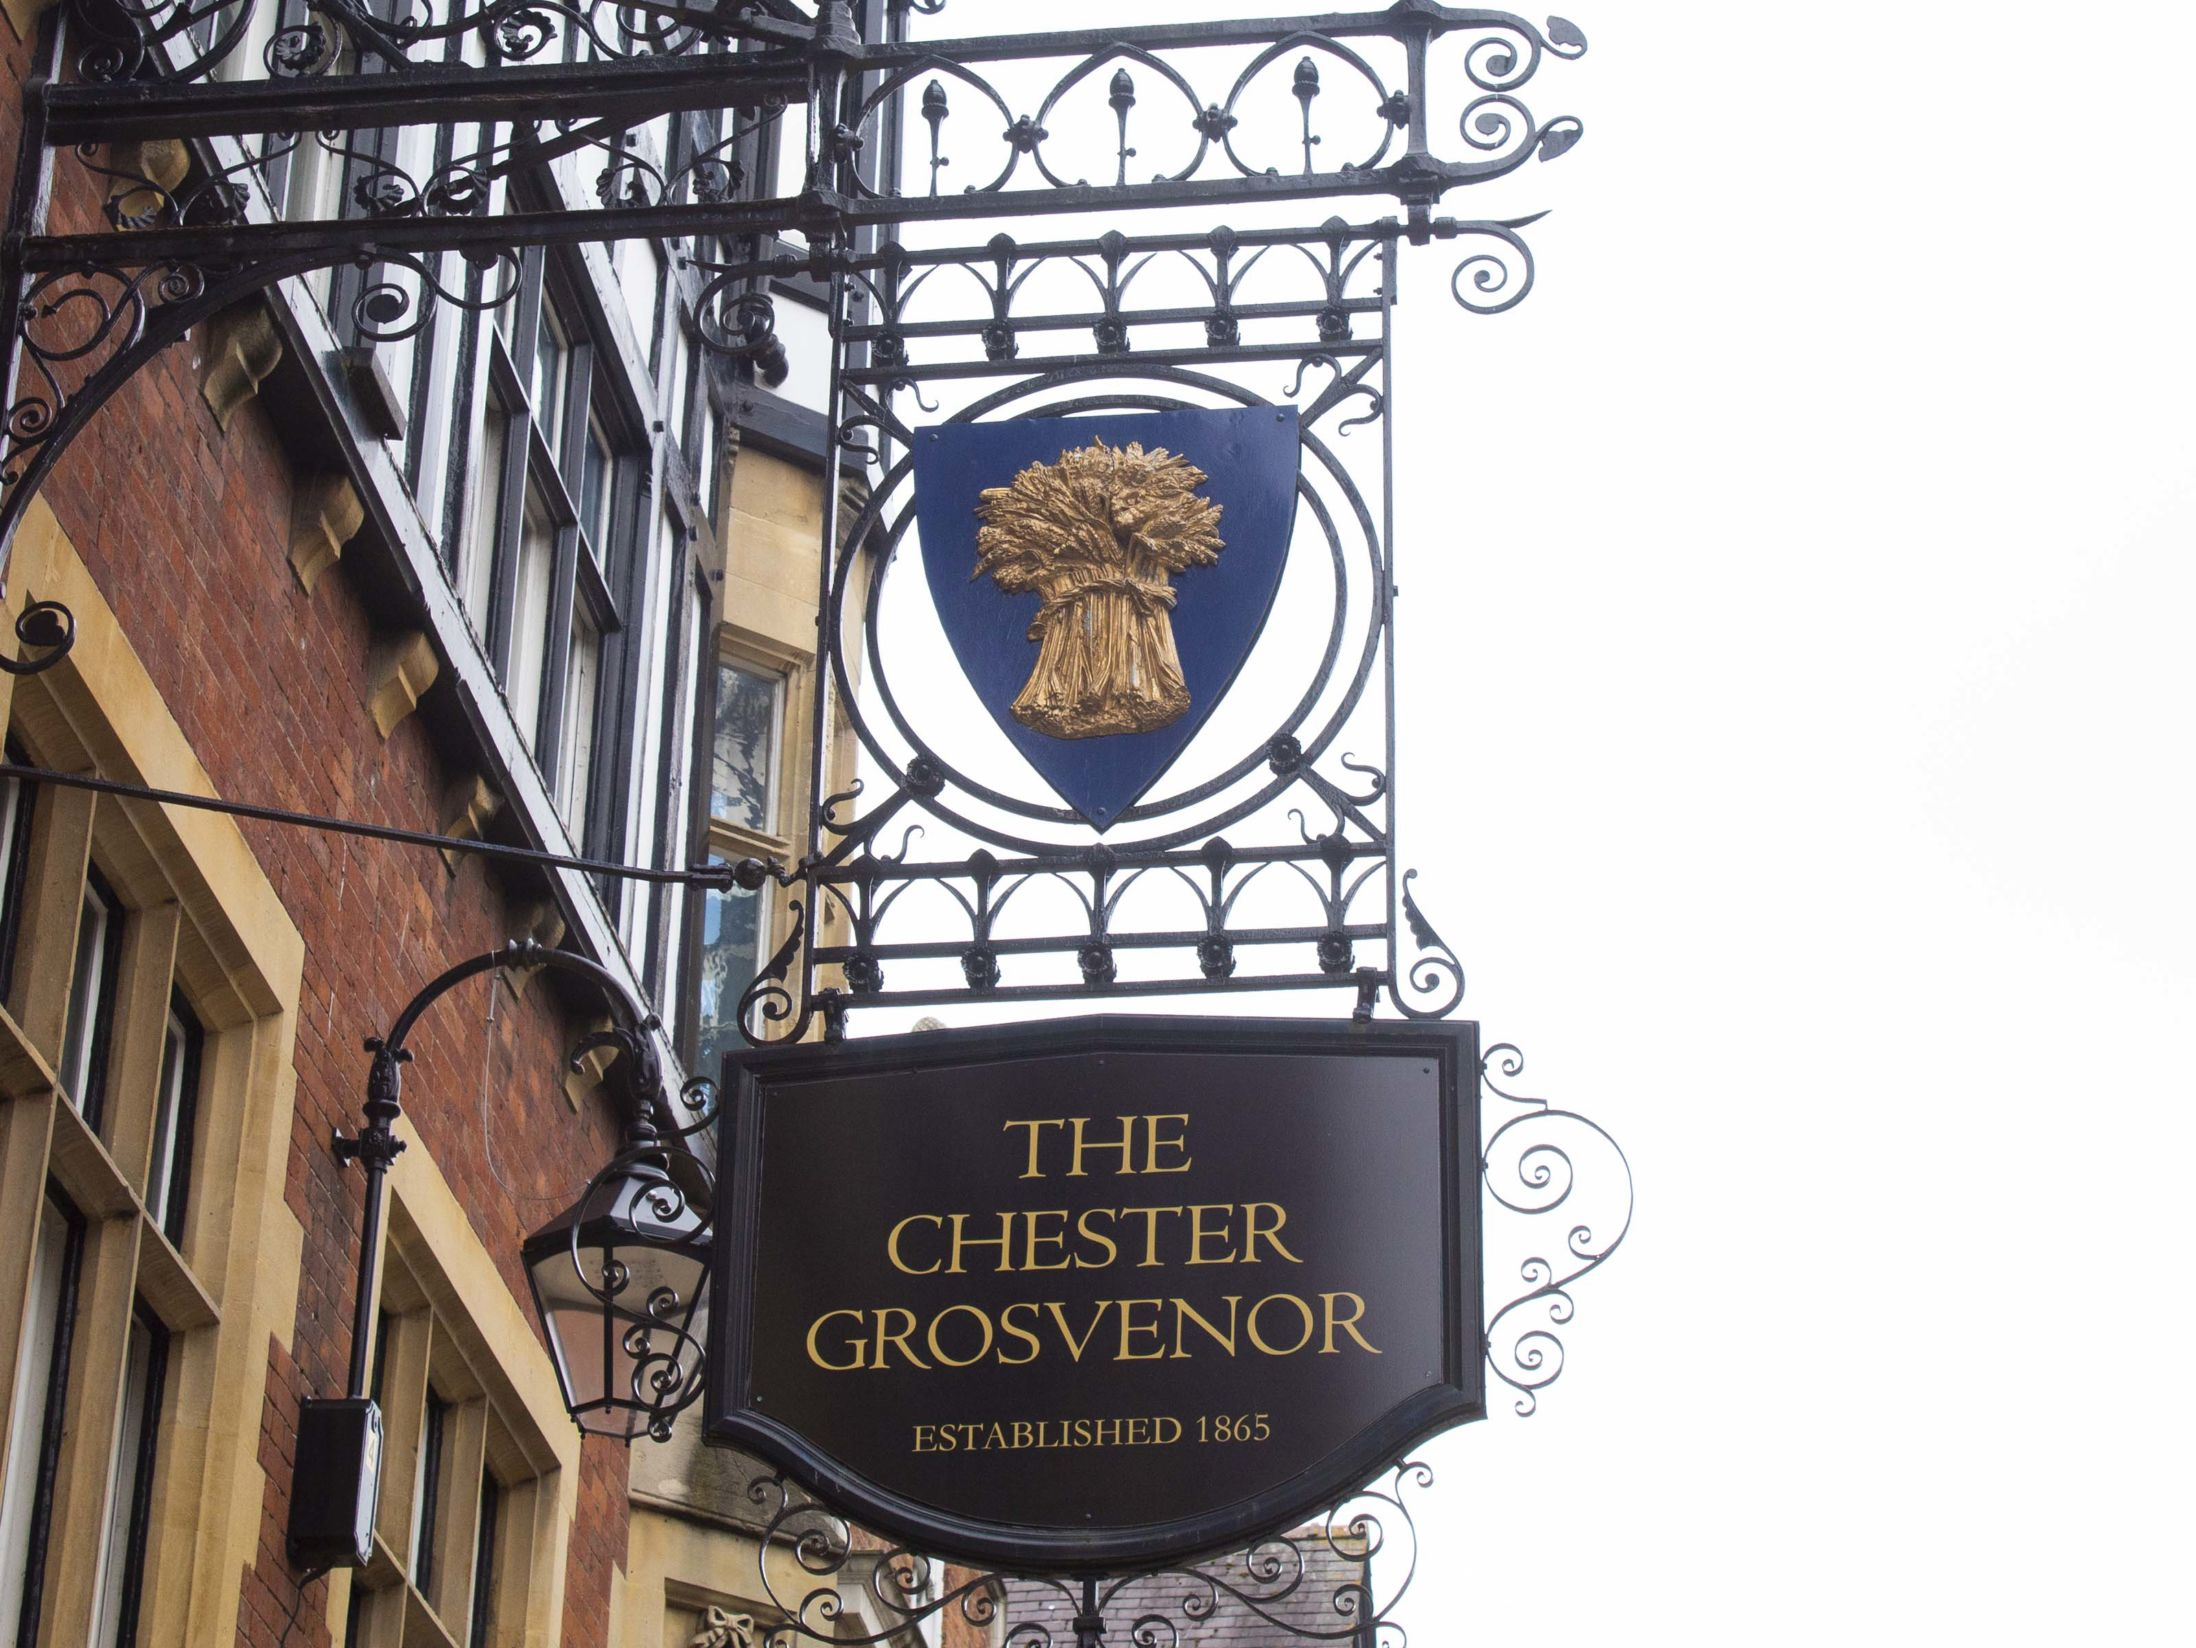 Afternoon Tea at Chester Grosvenor - Things to Do in Chester